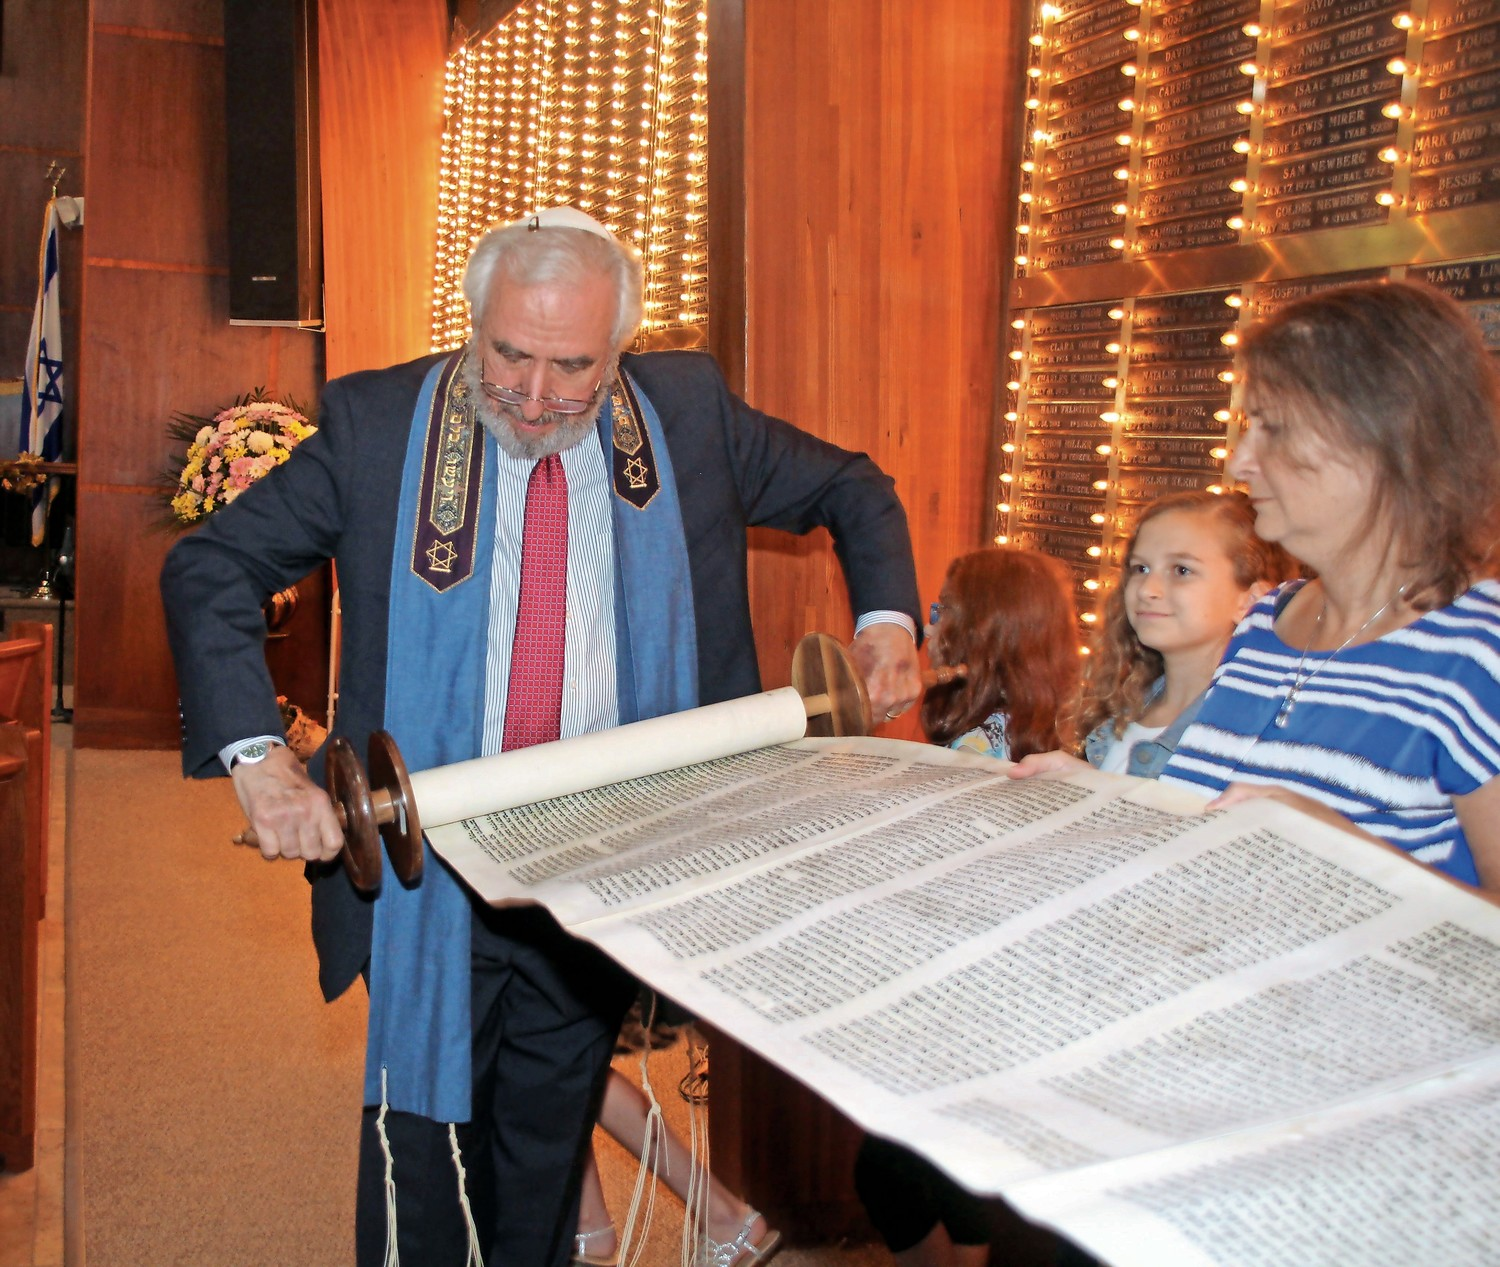 Rabbi Howard Nacht, of Temple B'Nai Torah, looked over a scroll at the temple's Simchat Torah service on Oct. 11. Temple Emanu-El, of East Meadow, will merge with the congregation next July.